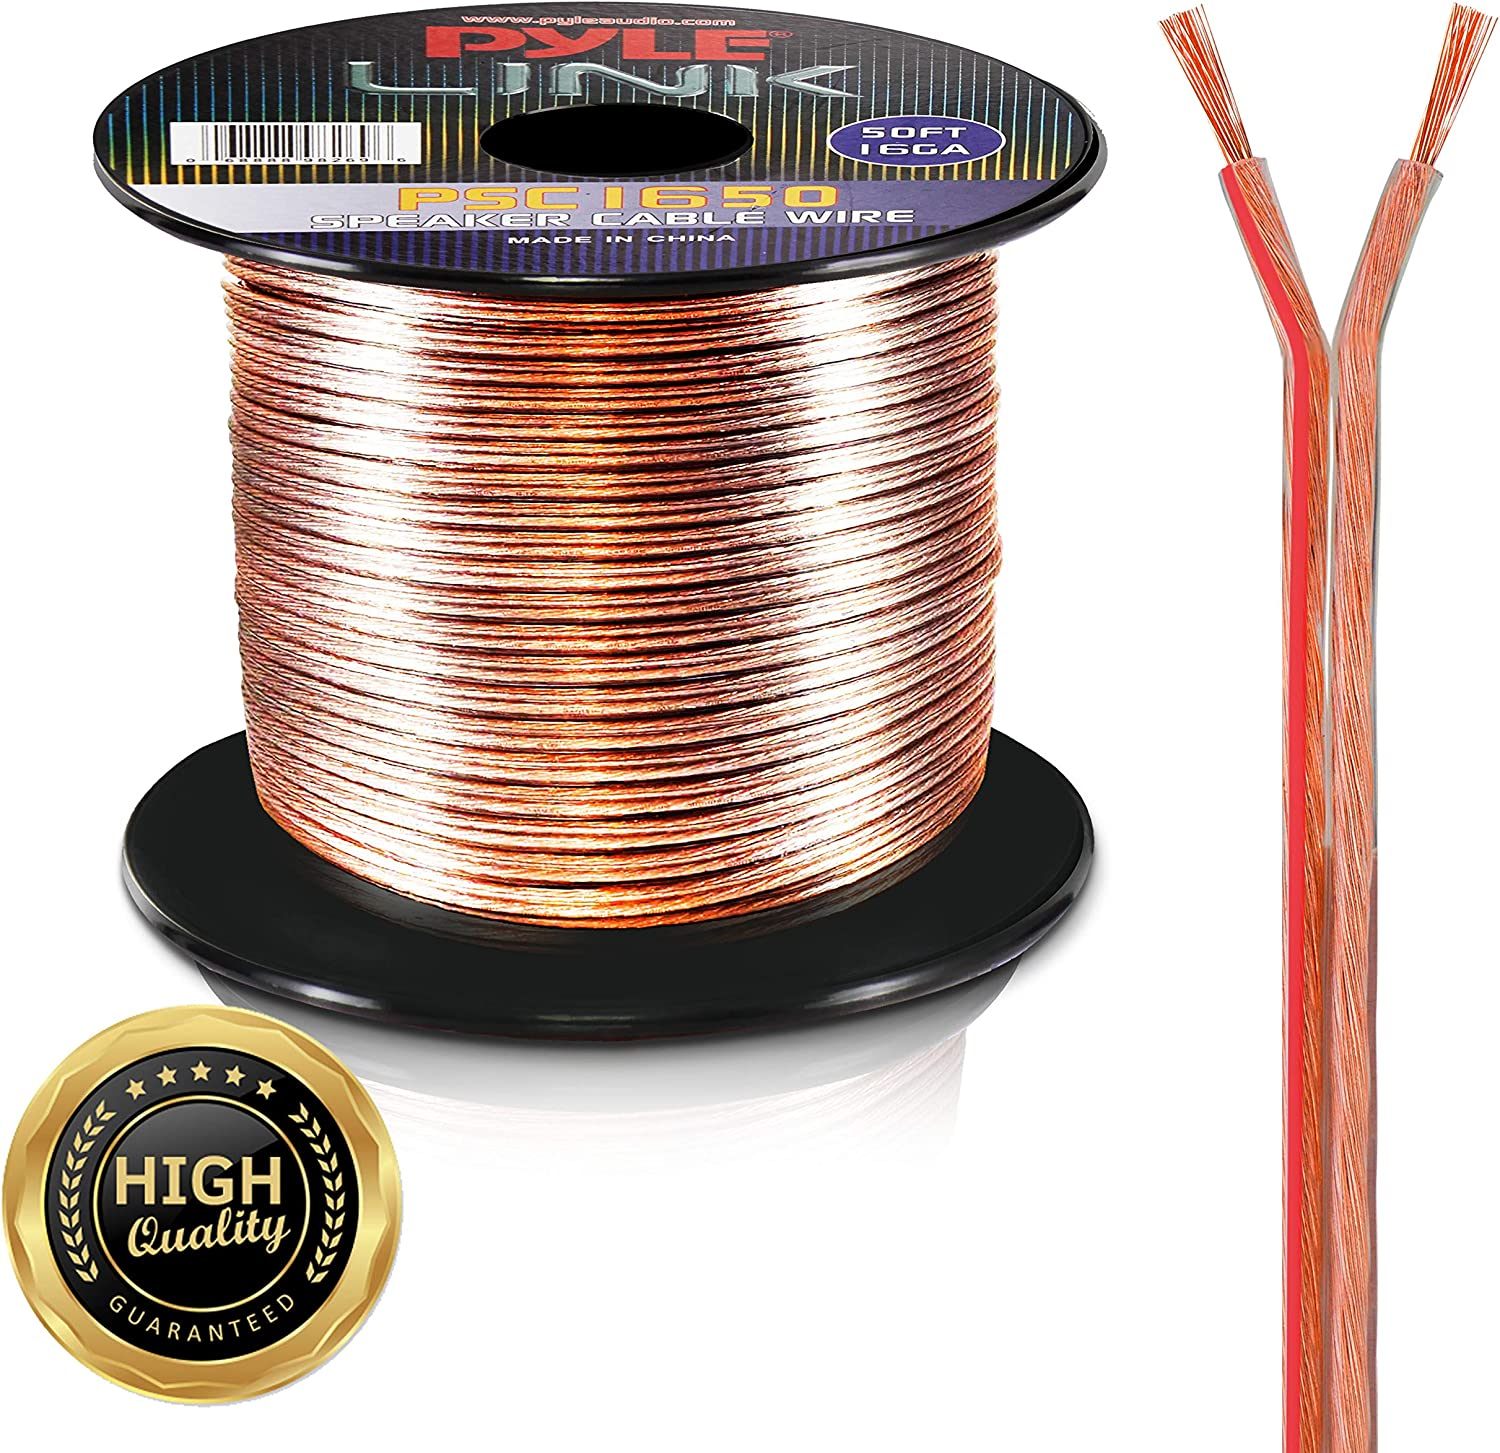 Pyle PSC1850 18-Gauge 50-Feet Spool of Speaker Zip Wire: Car Electronics